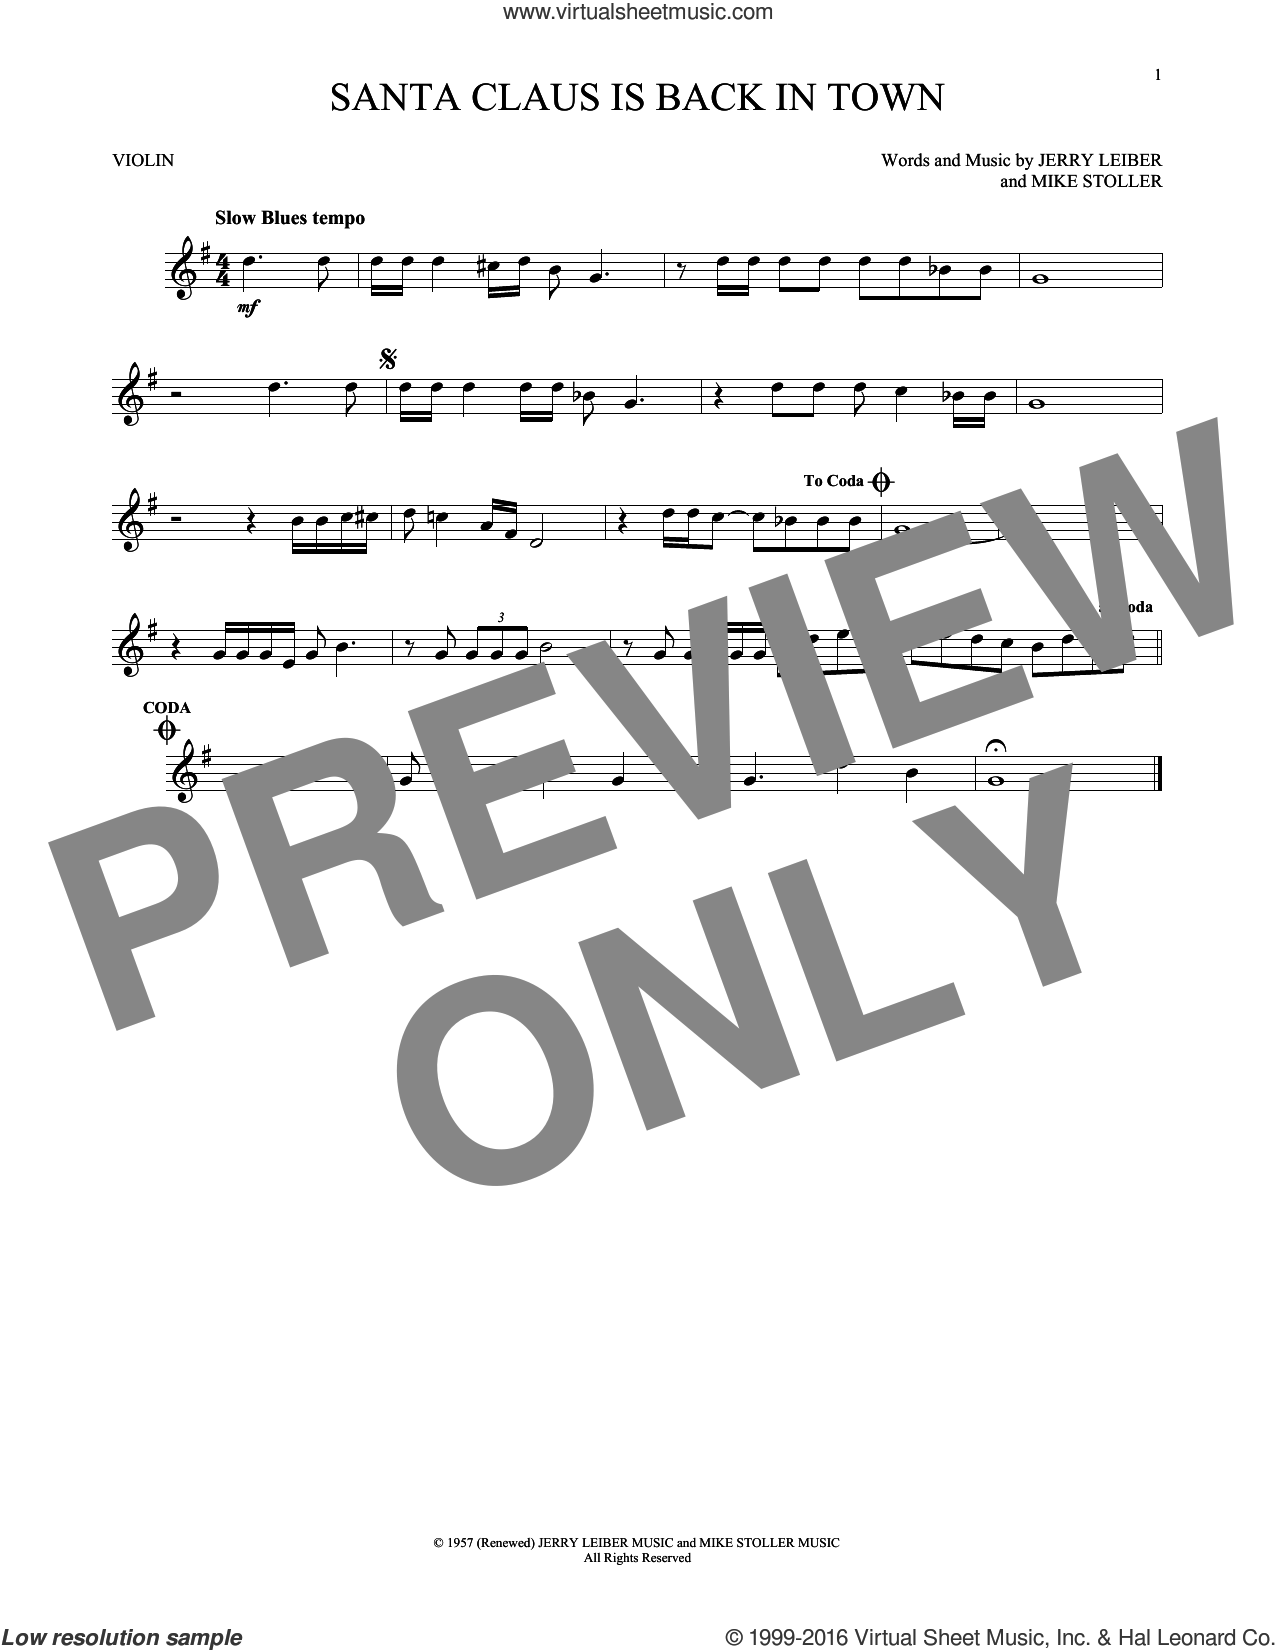 Santa Claus Is Back In Town sheet music for violin solo by Elvis Presley, Jerry Leiber and Mike Stoller, intermediate skill level